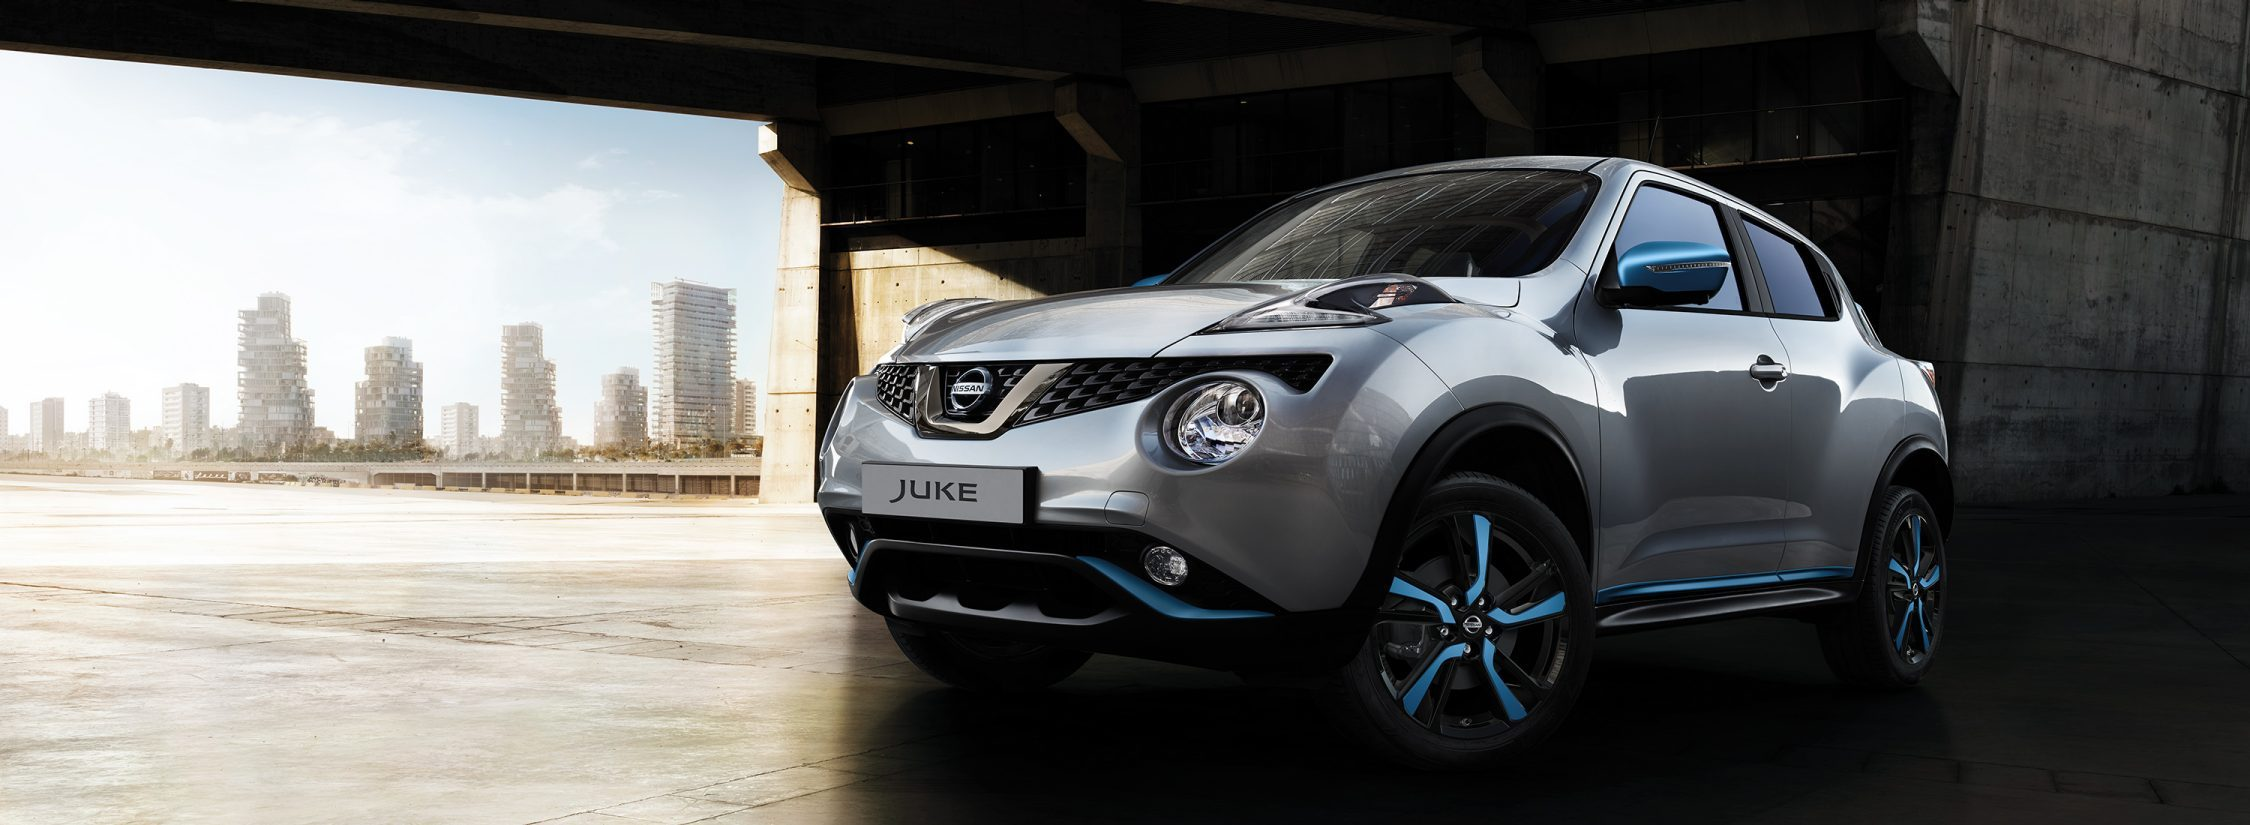 2018 Nissan JUKE 3/4 front low parked under a bridge with power blue personalisation